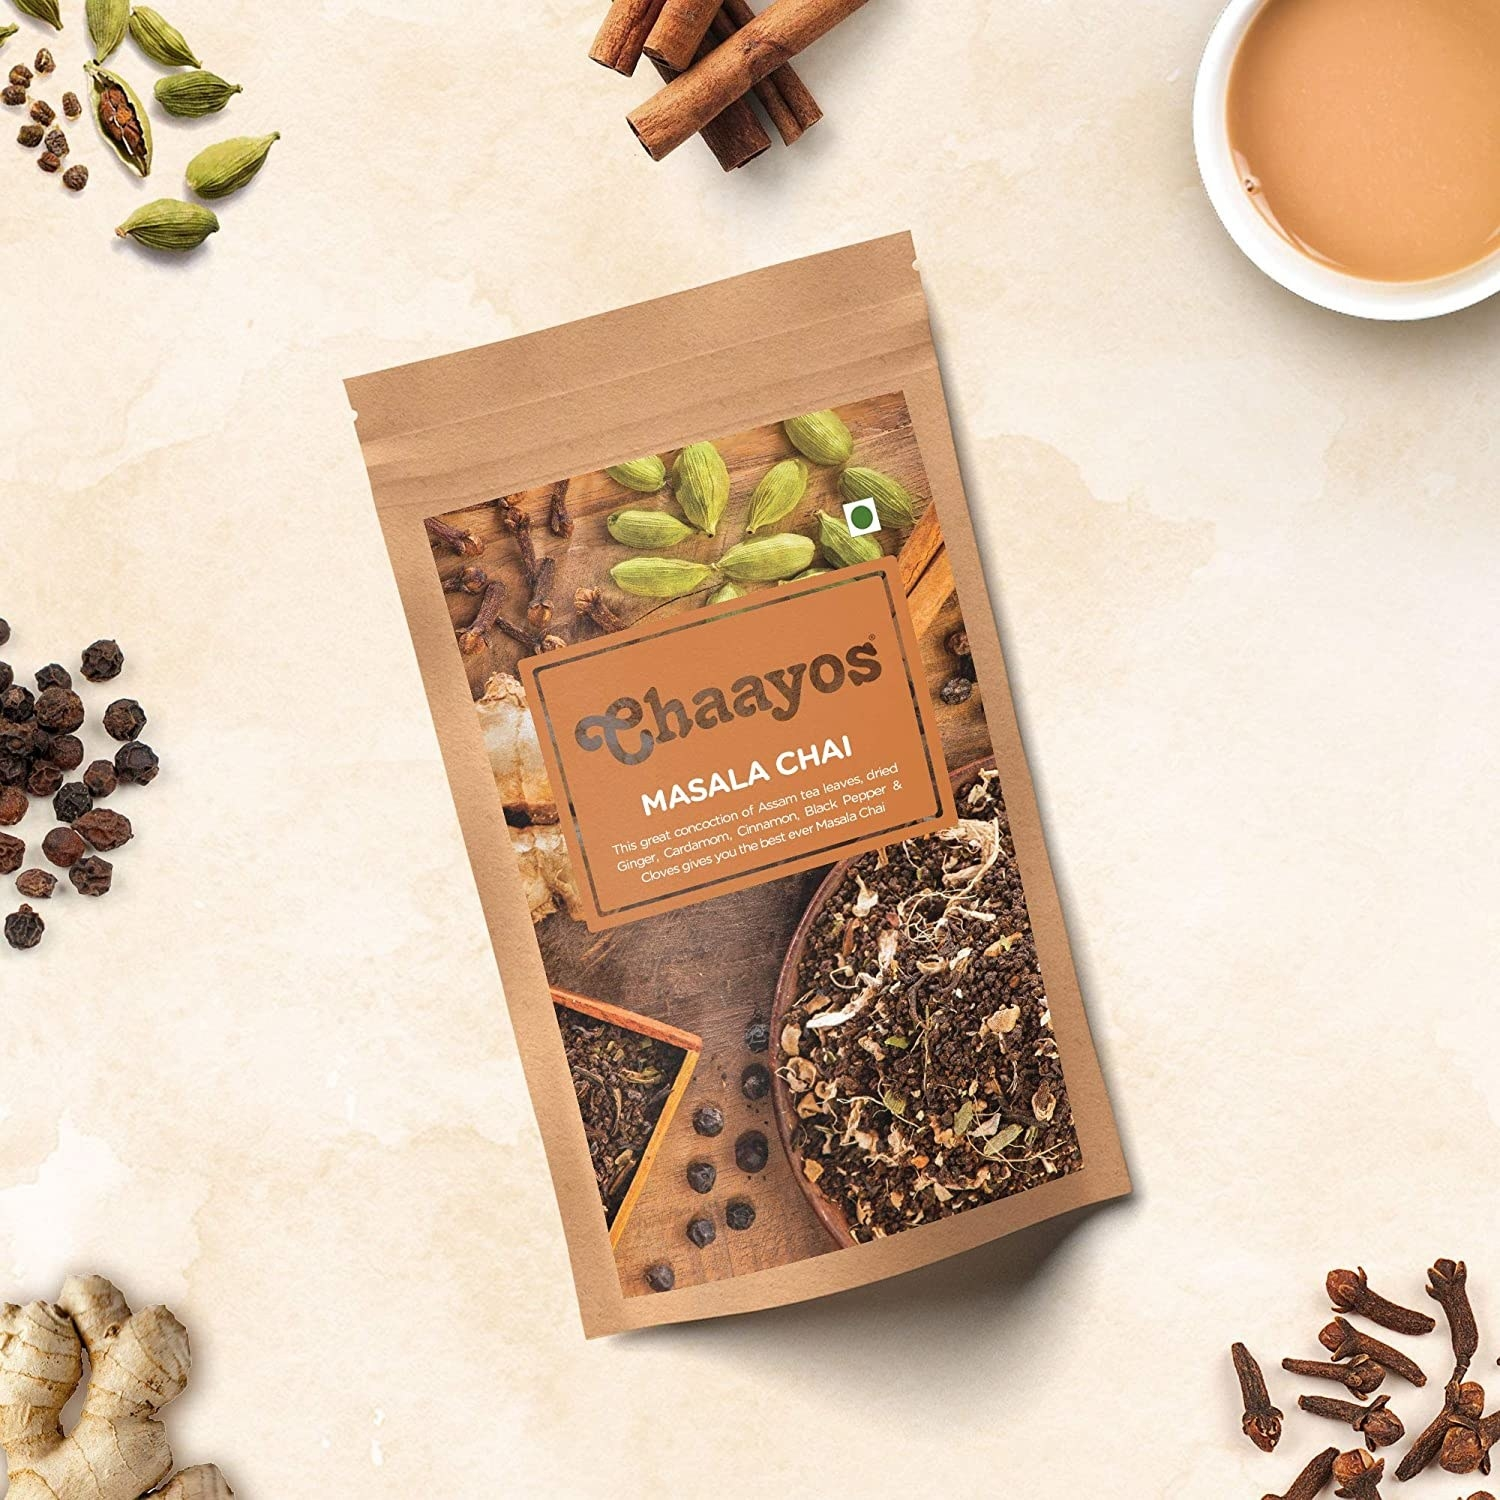 Packet of Chaayos masala chai on a table surrounded by spices